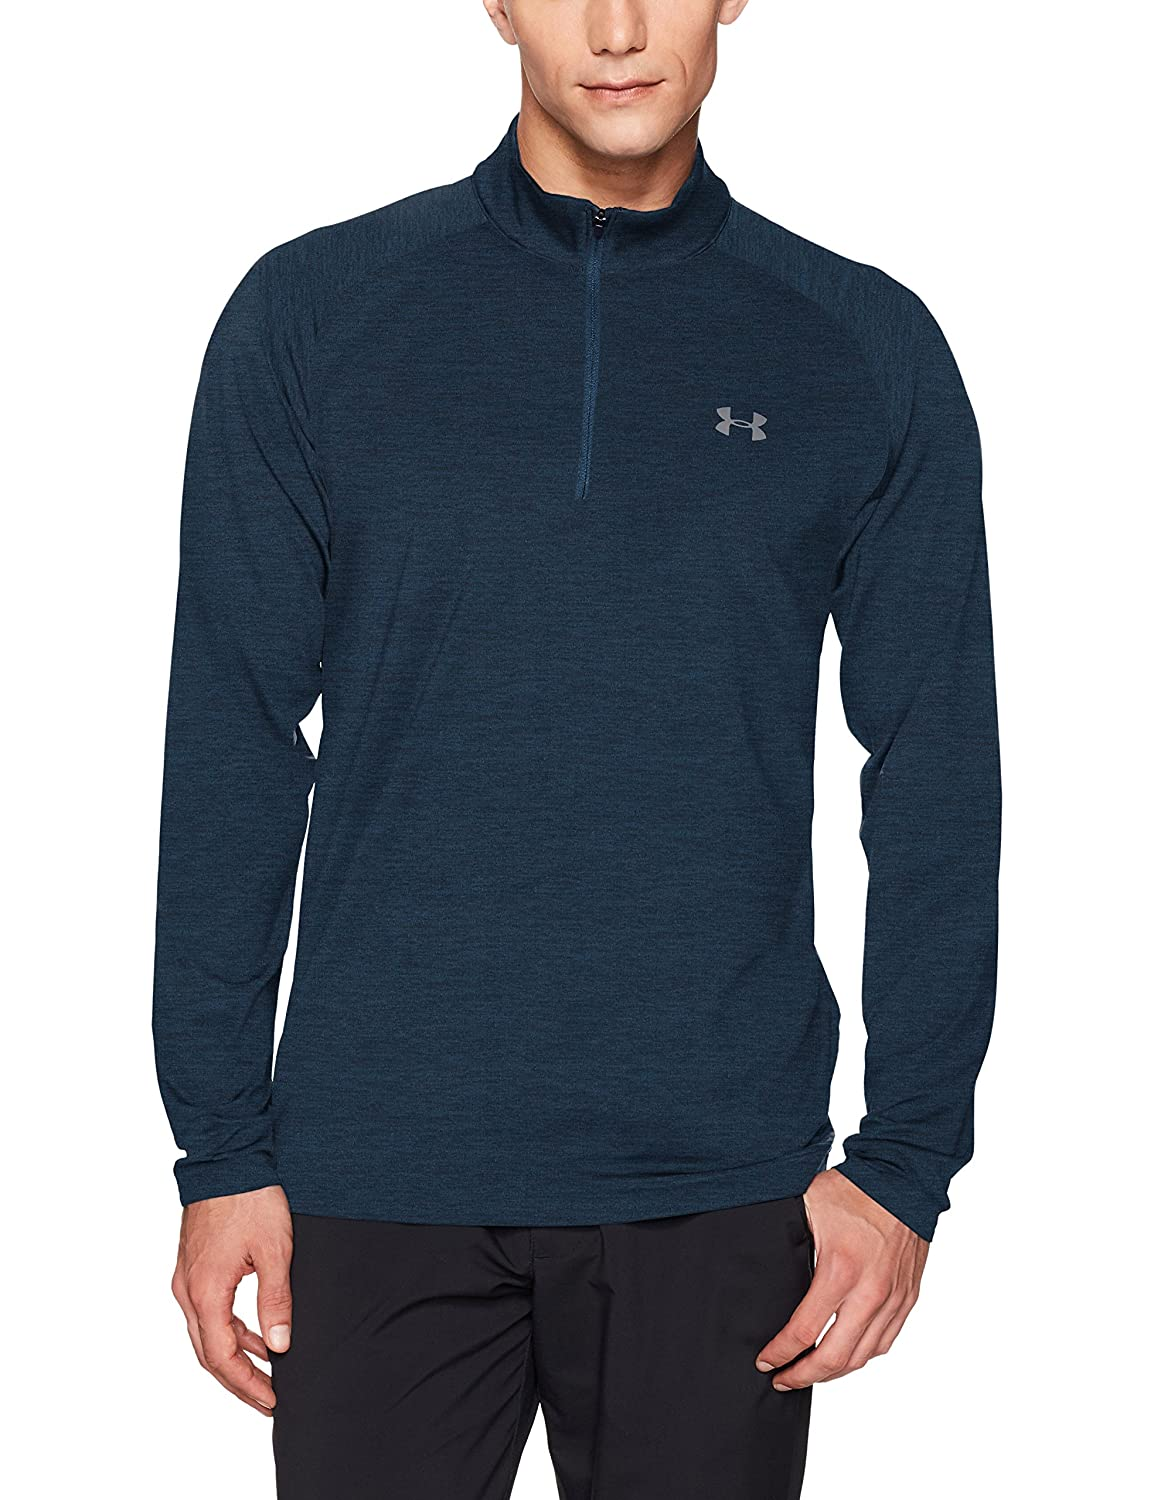 Under Armour Herren Playoff 1/4 Zip Oberteil